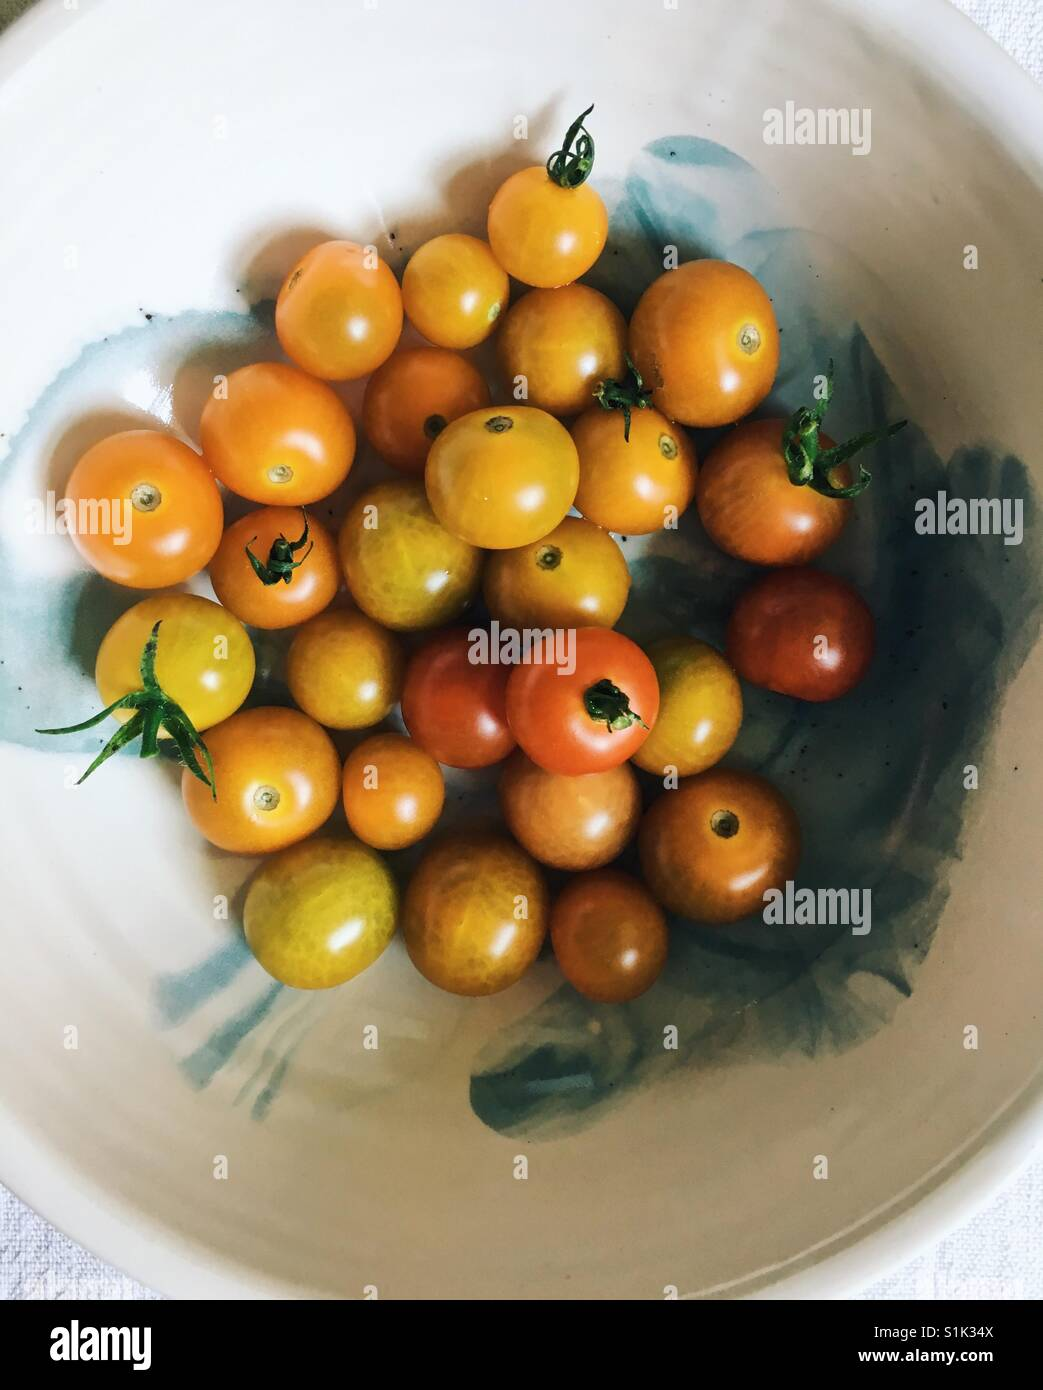 Cherry tomatoes plucked from a garden. - Stock Image